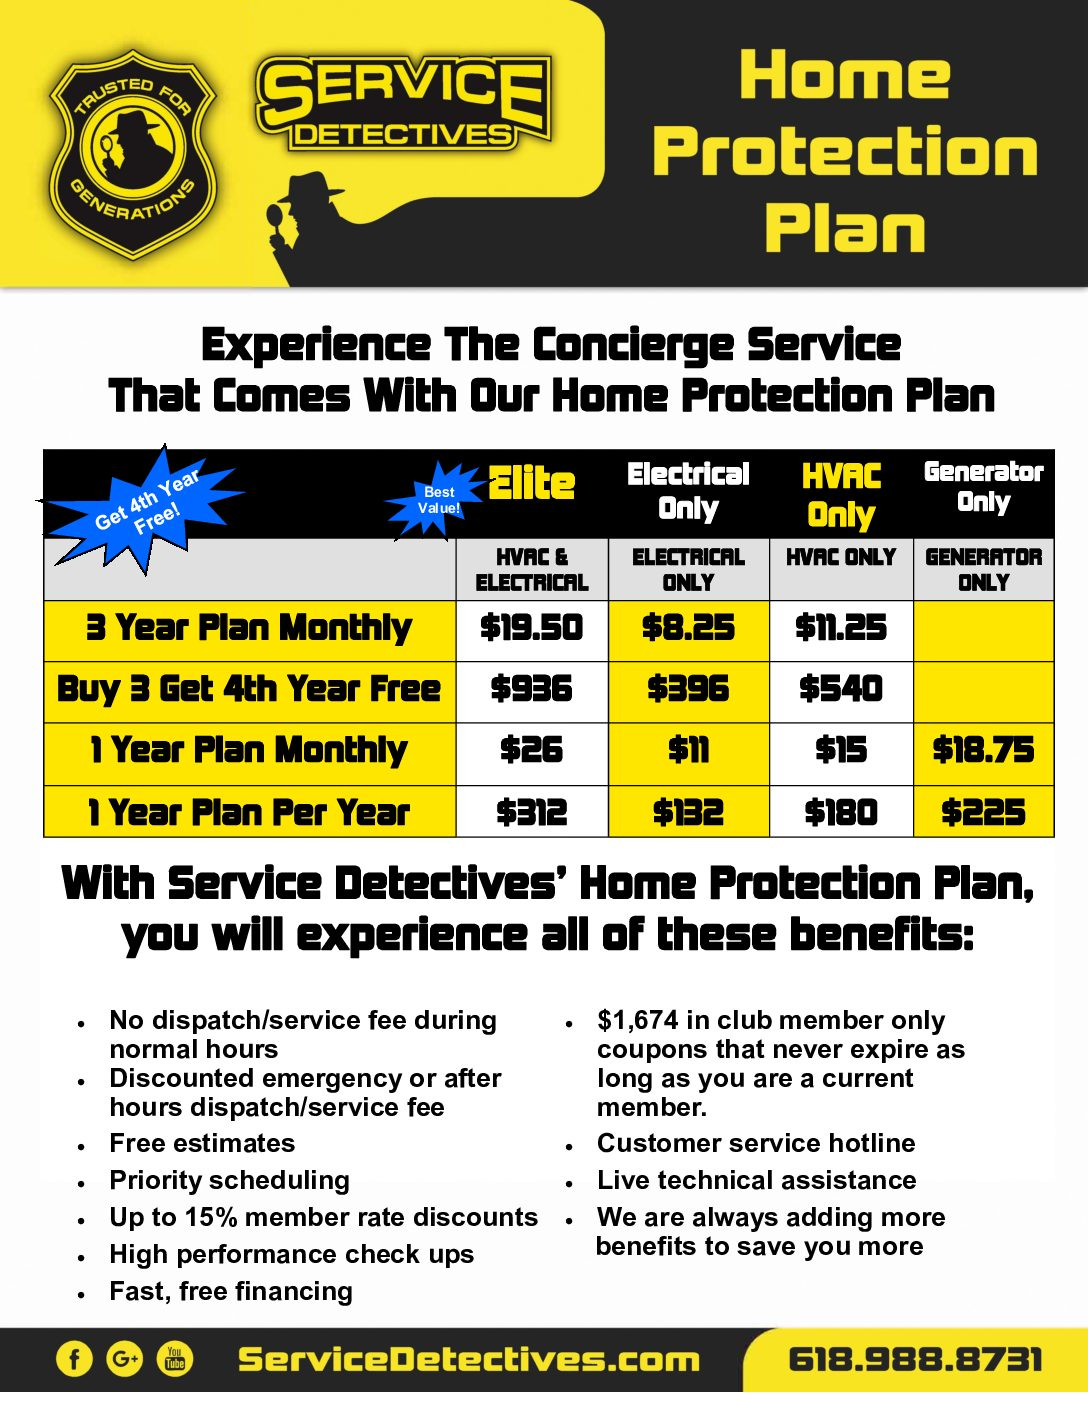 Home Protection Plans - Join Our Club! > Service Detectives on home depot floor plan, future years defense plan, home care plan, home construction plan, home budget plan, home shelter plan, home split plan, home health plan, bathroom plan, get a home plan, cleaning plan, home accessories plan, home storage plan, home service plans, home development plan, home discipline plan, home design plan, training plan, home warranty, home clothing,